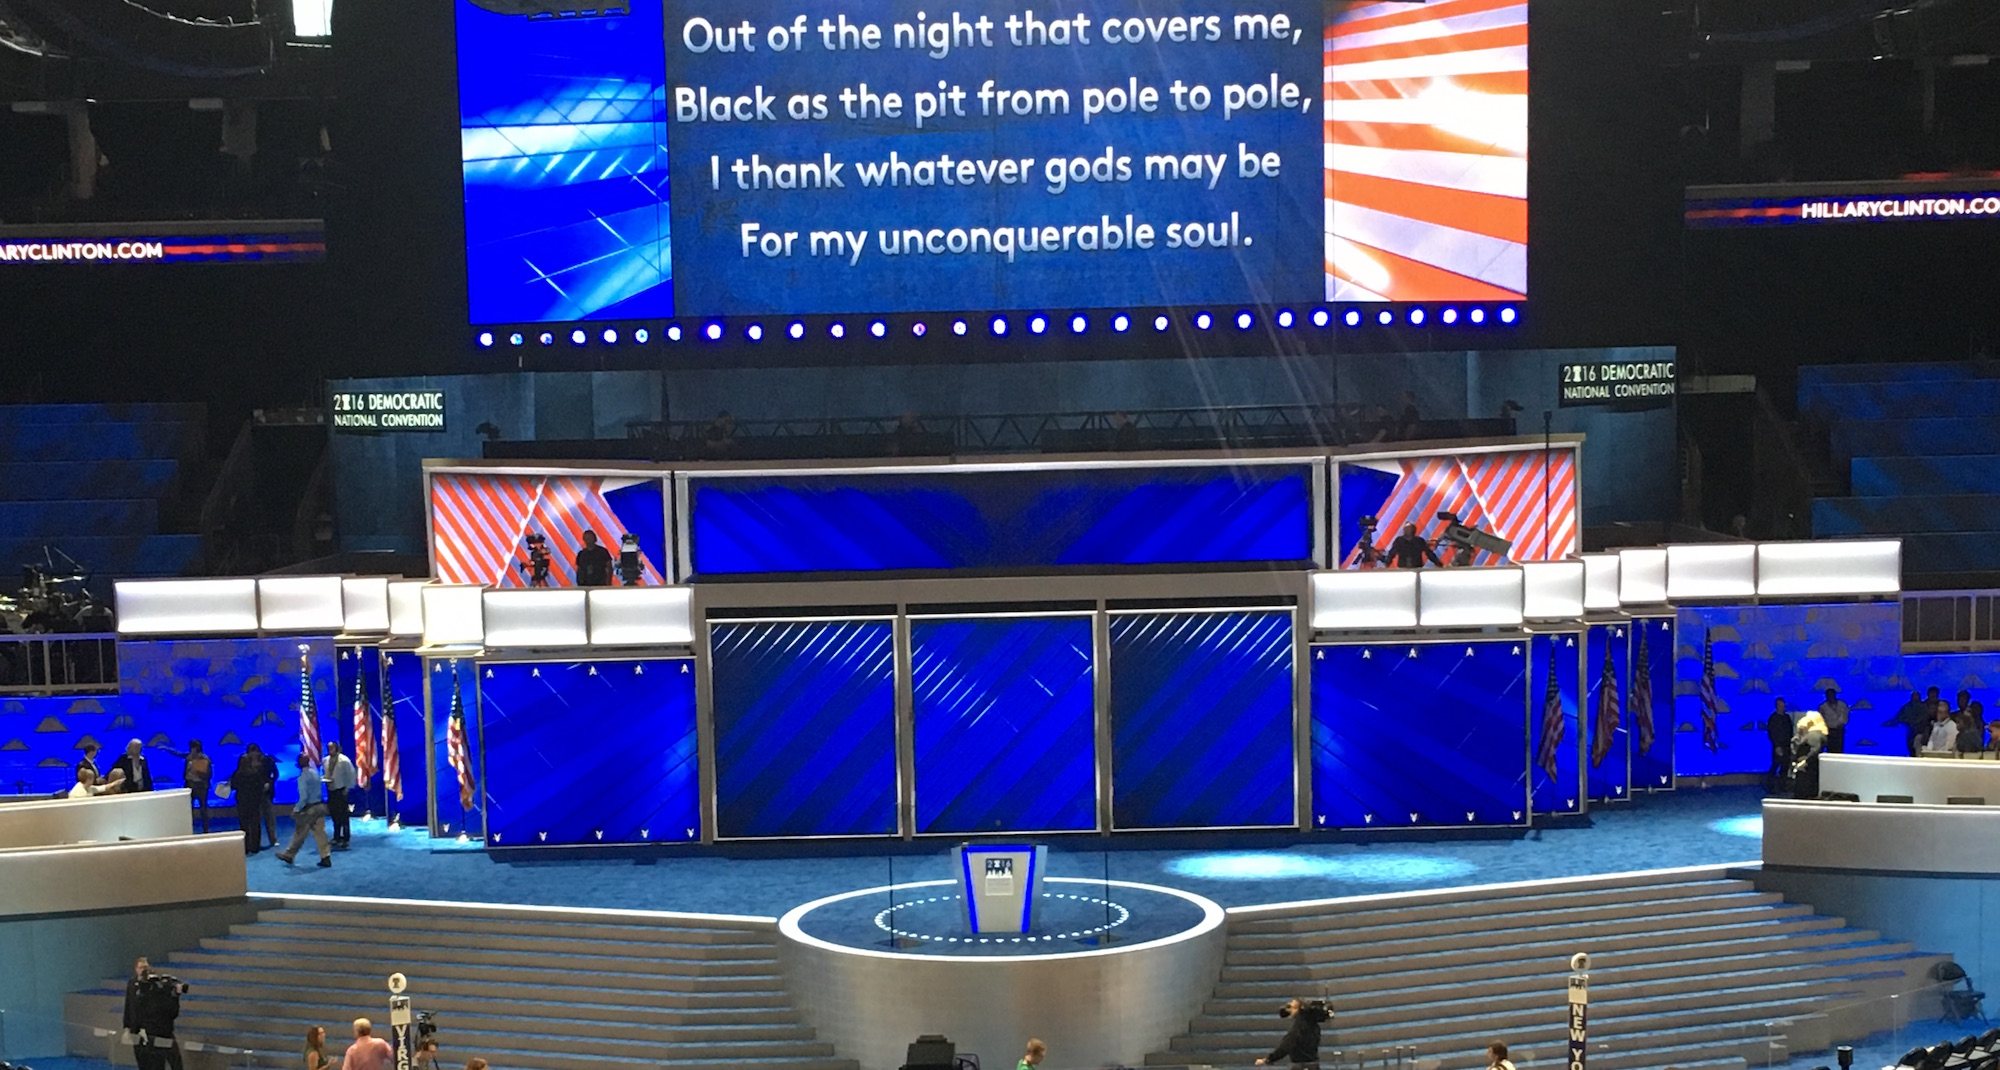 American flags are added to the DNC stage (Vince Coglianese/The Daily Caller)